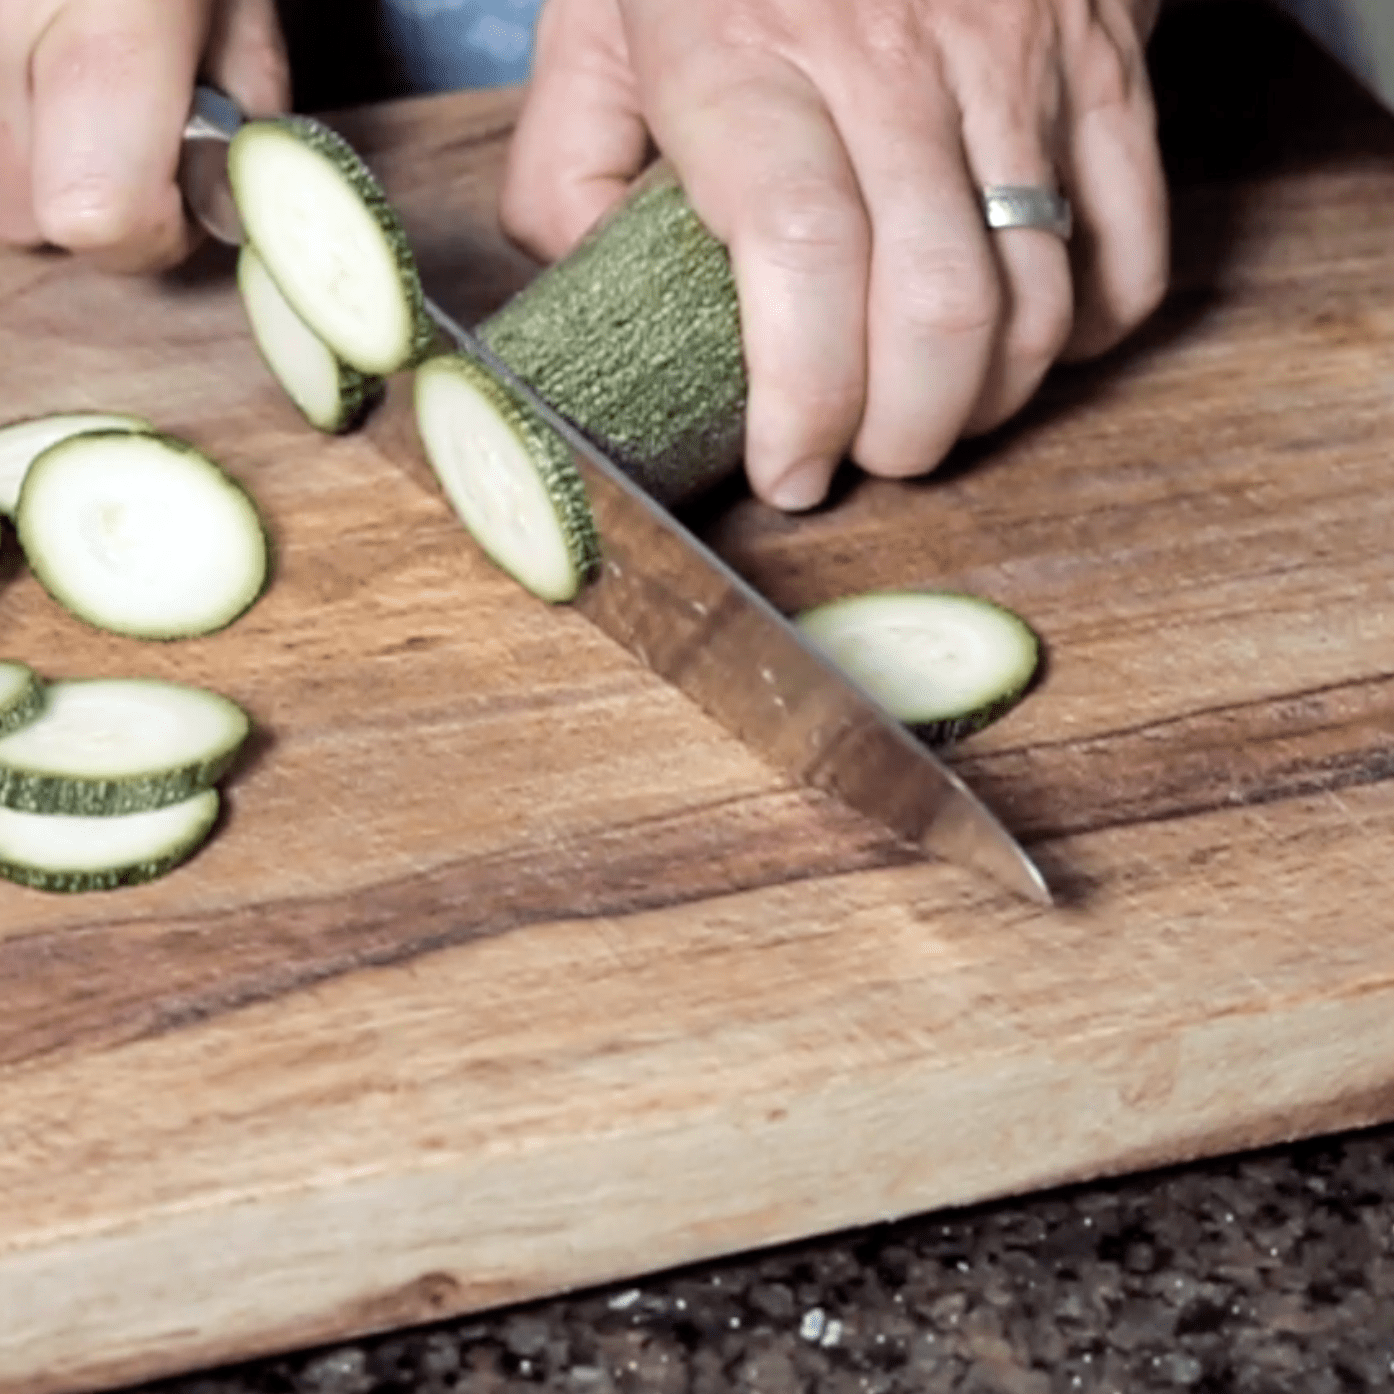 Slice the zucchinis to chip size